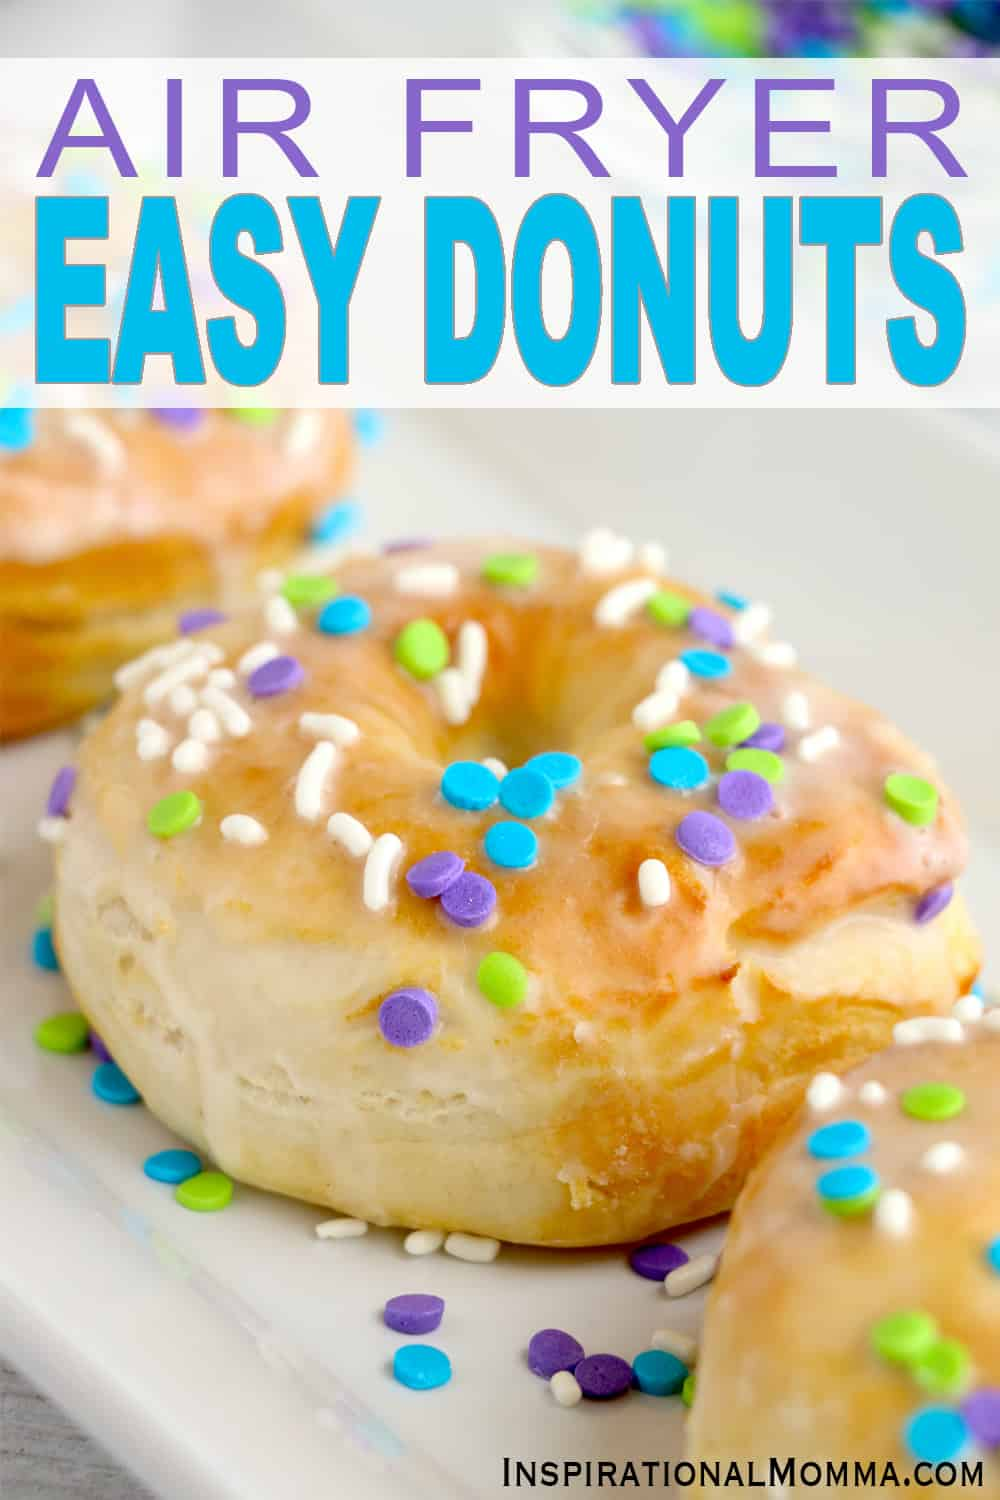 Air Fryer Donuts from Biscuits are the easiest, tastiest treats ever!  They are light, fresh, and have less fat than deep-fried donuts. #inspirationalmomma #airfryerdonutsfrombiscuits #airfryerdonuts #biscuitdonuts #easydonuts #glazeddonuts